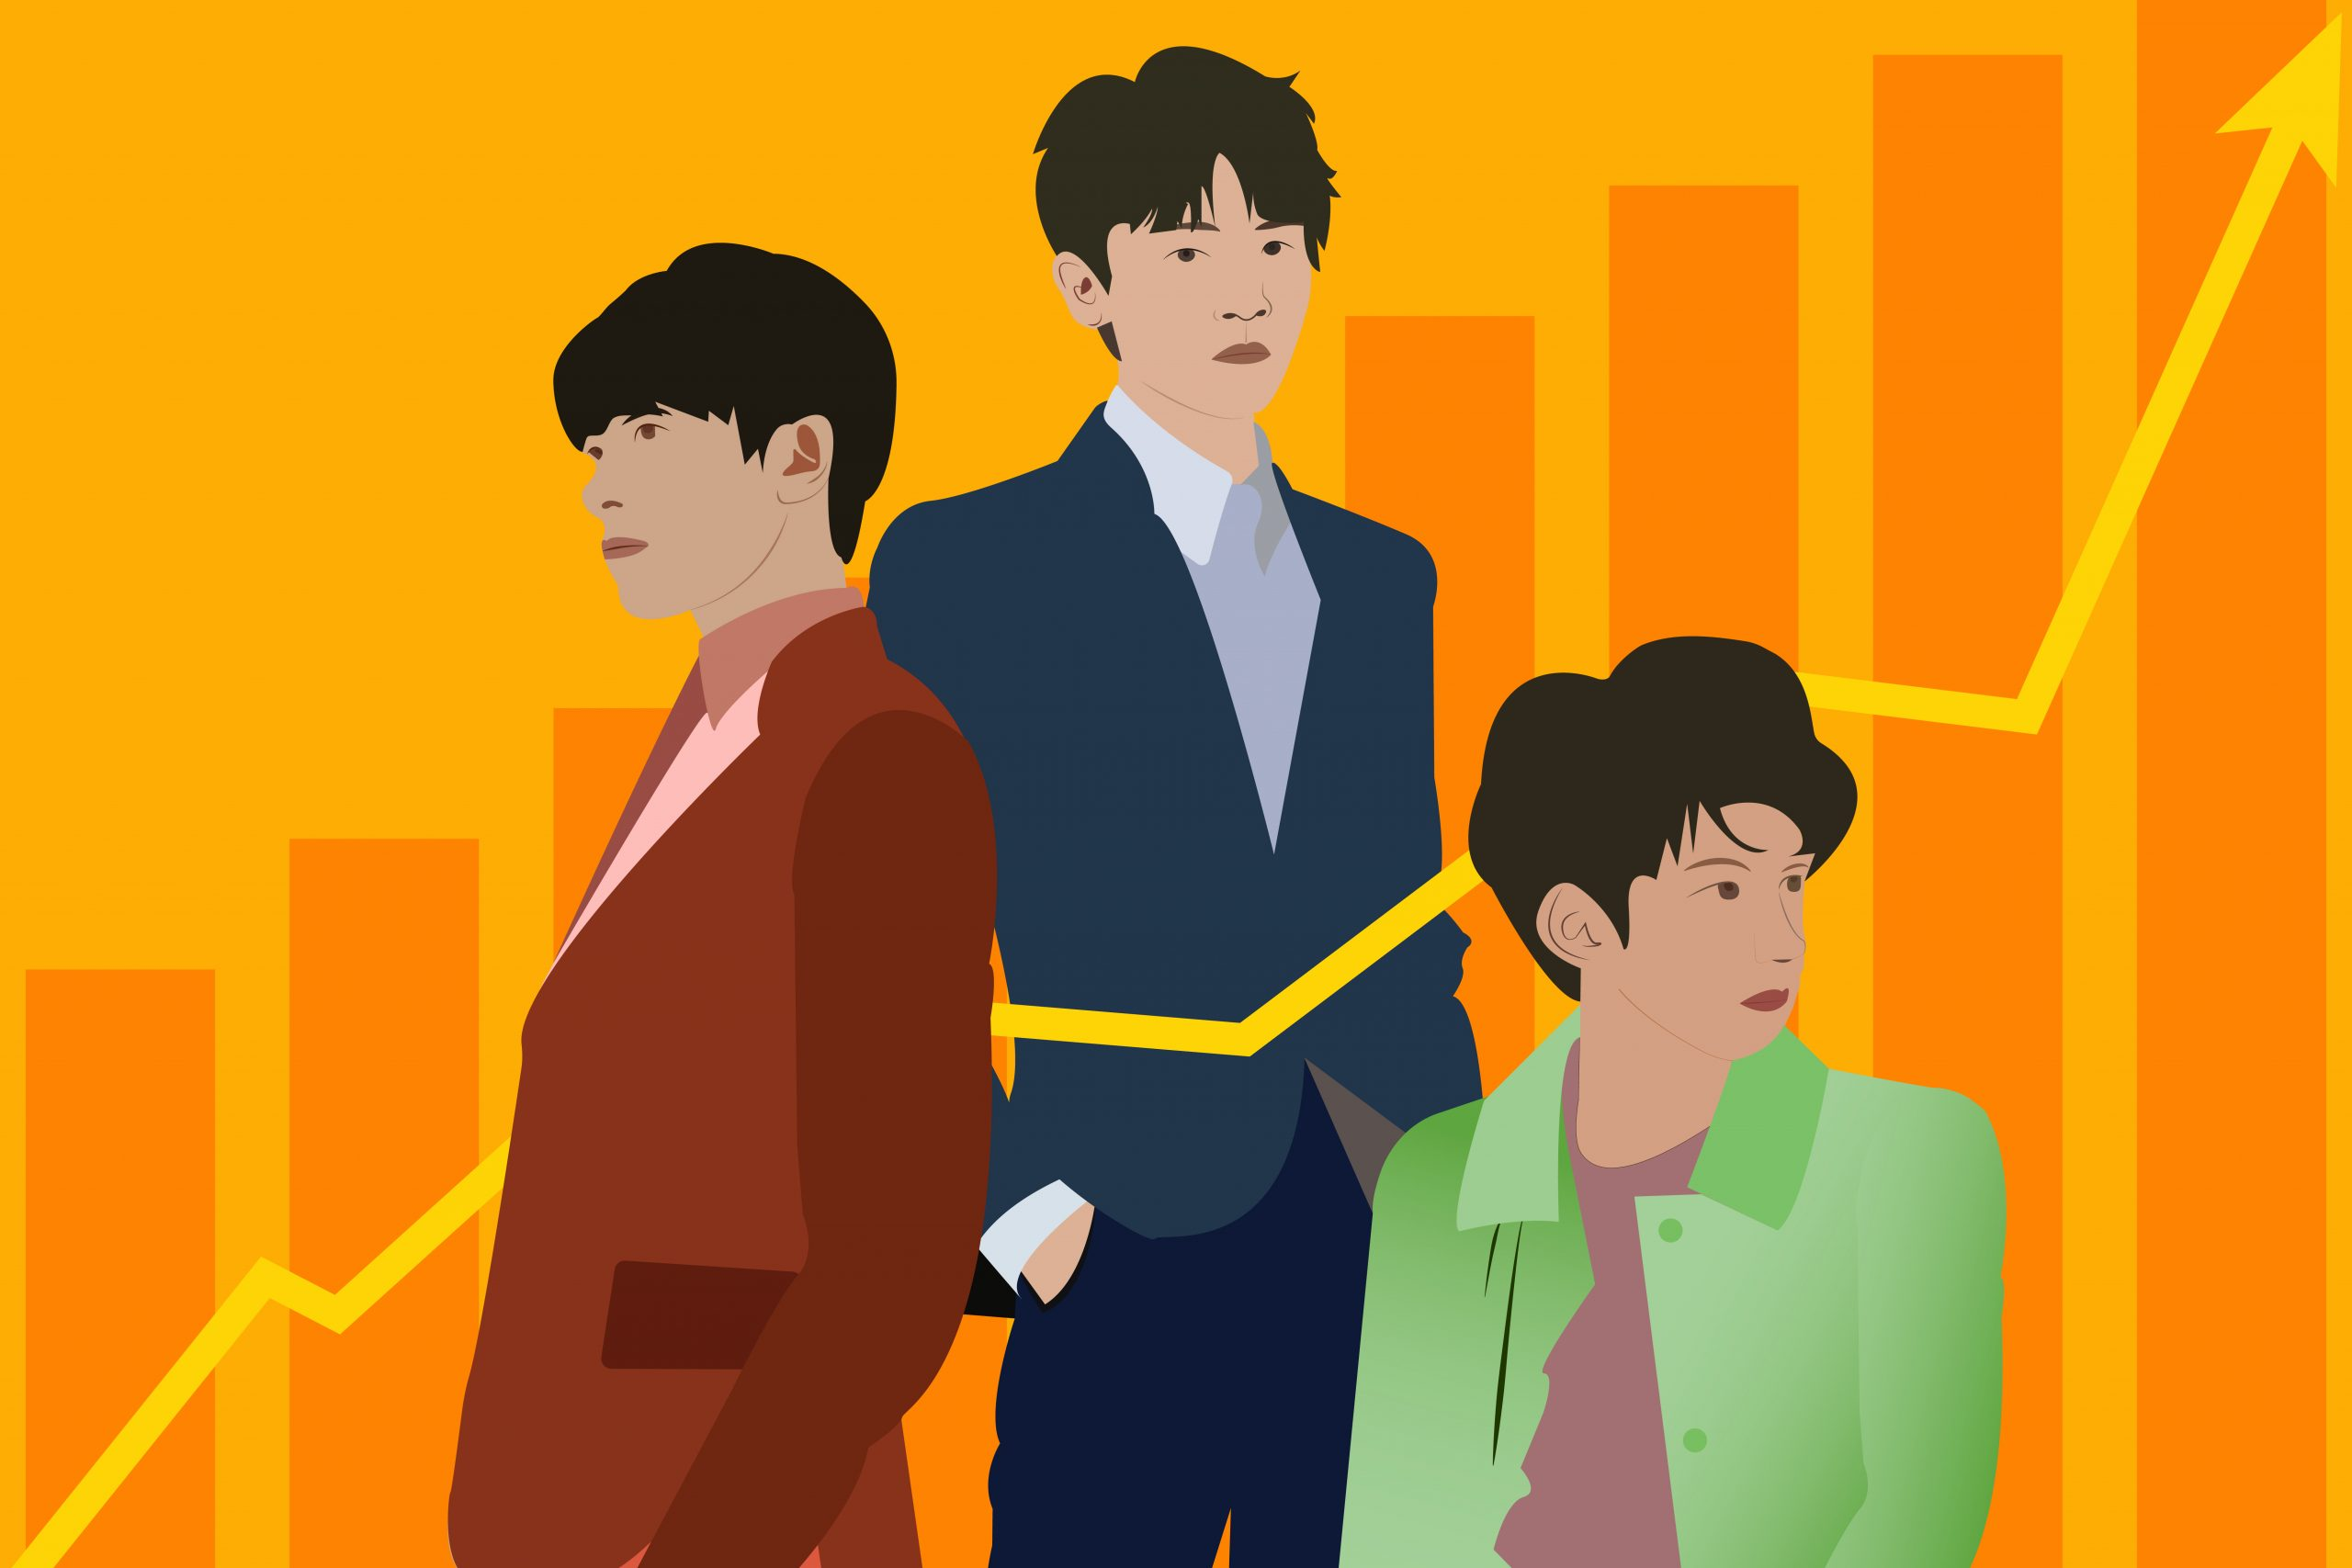 An illustration of the three members of TFBoys for an article about their rising popularity and emotional impact. (Illustration by Julie Chow, University of California, Berkeley)